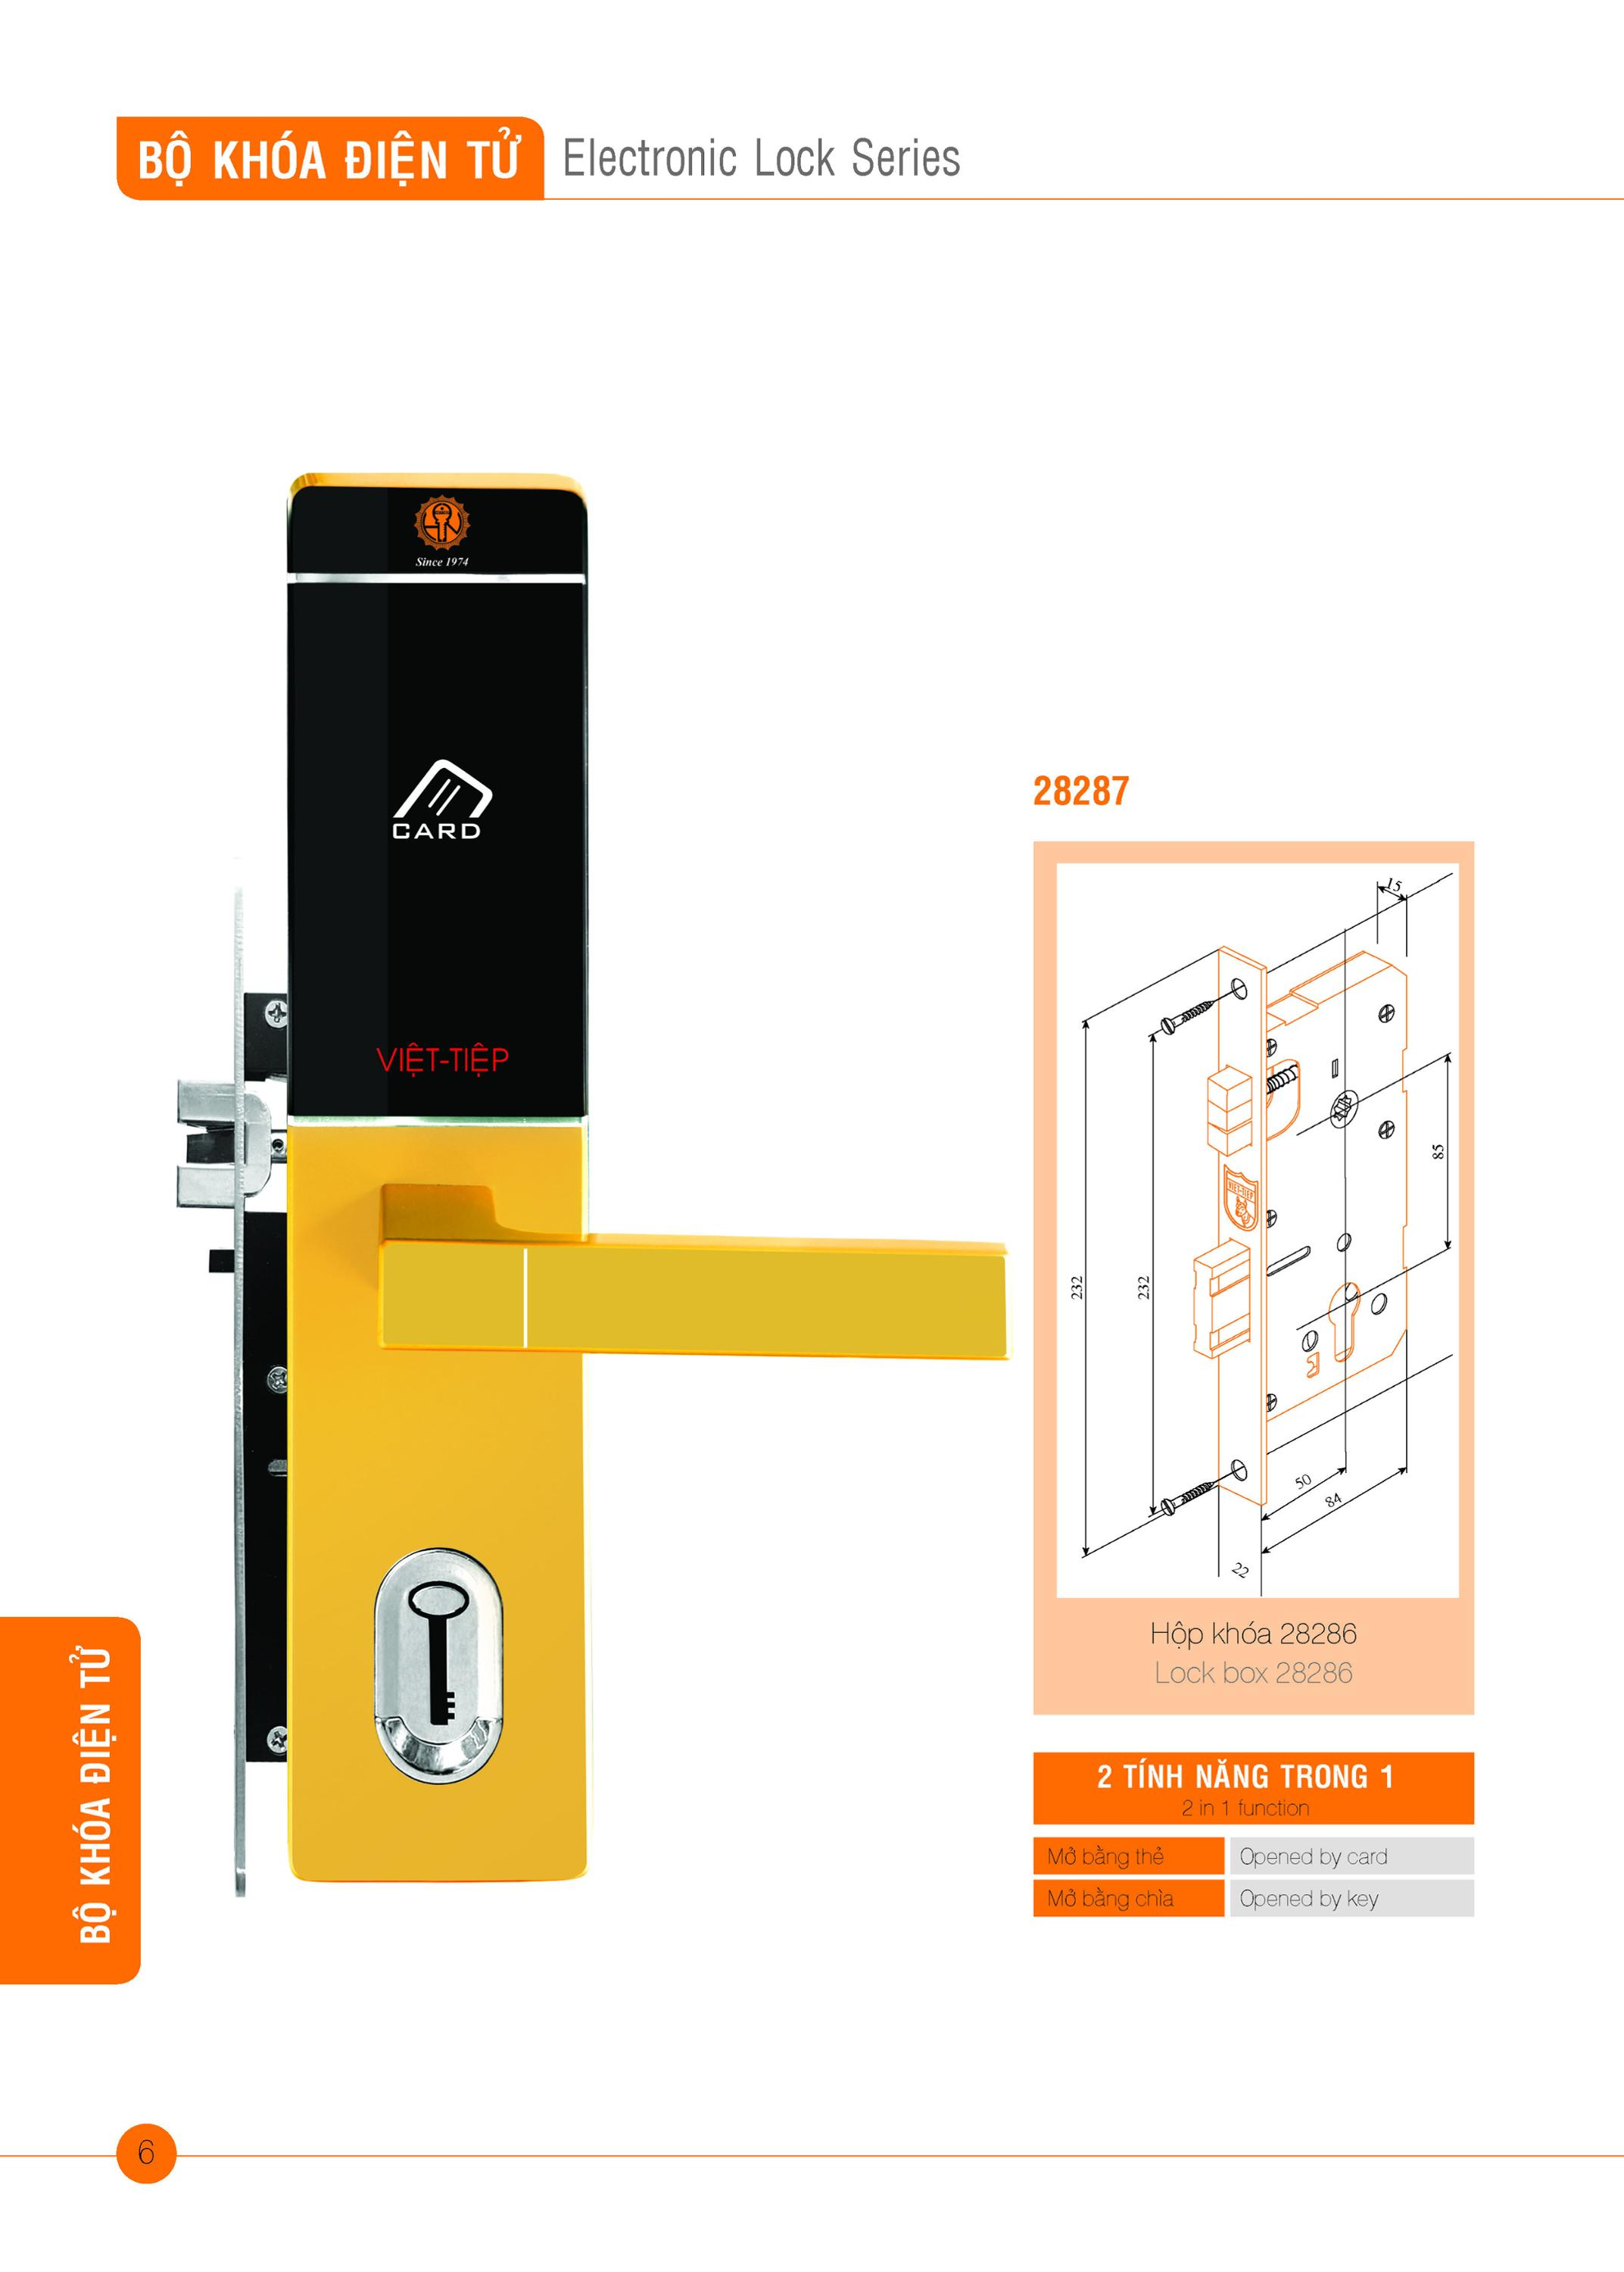 Electronic Lock series 2 in 1